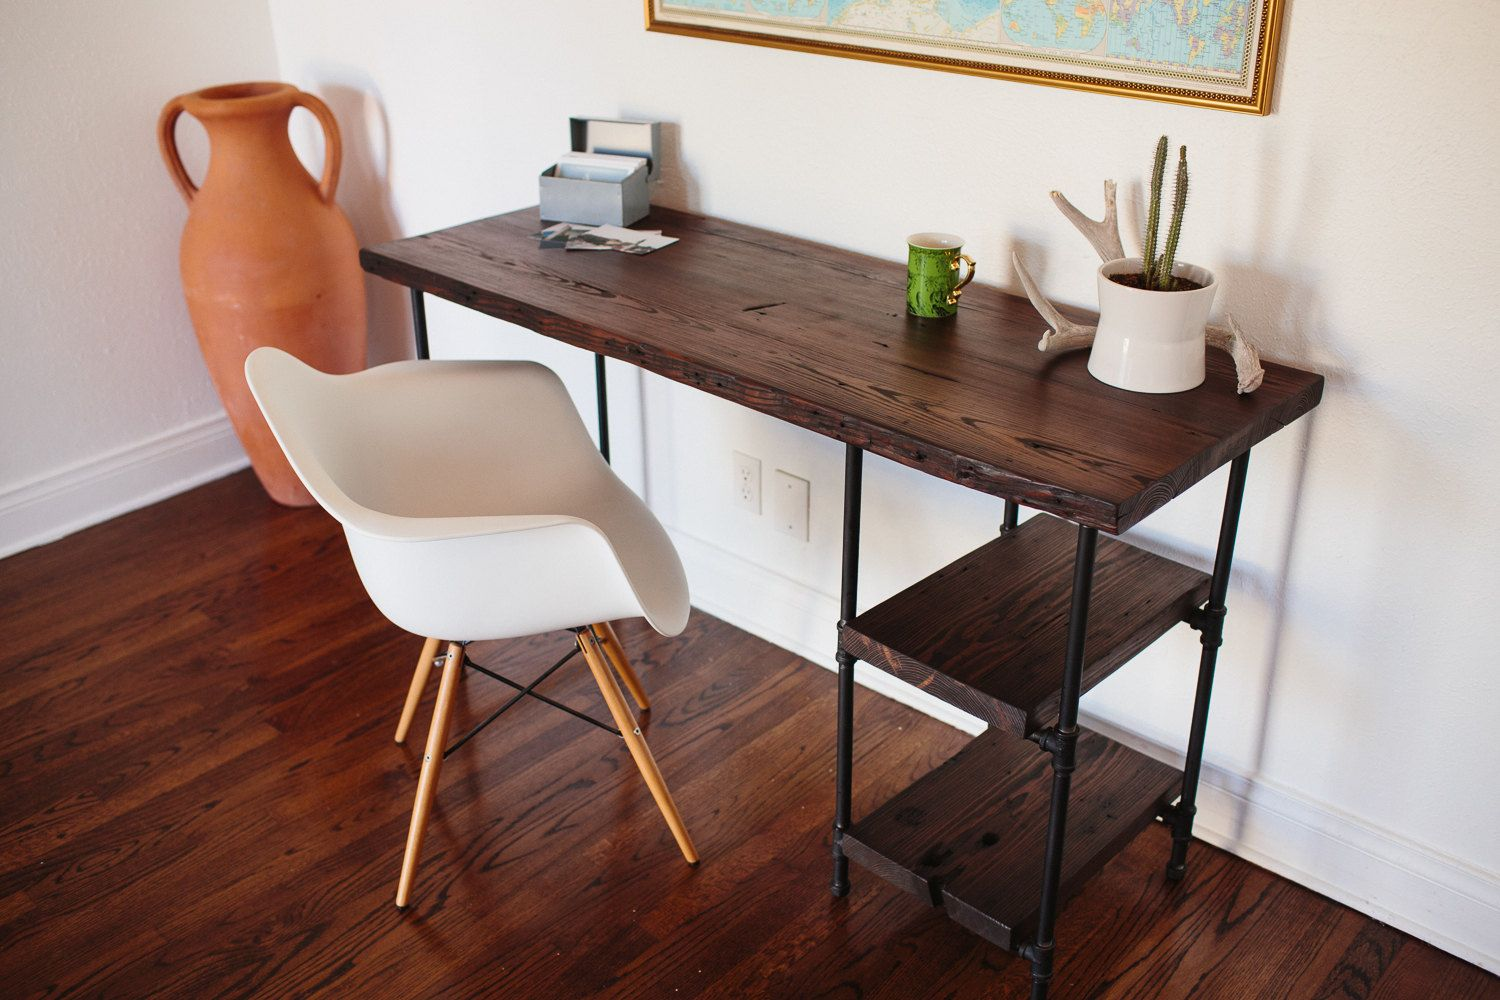 Recuperation De Meubles A Domicile Reclaimed Wood Desk W 2 Shelves By Craftgather On Etsy 650 00